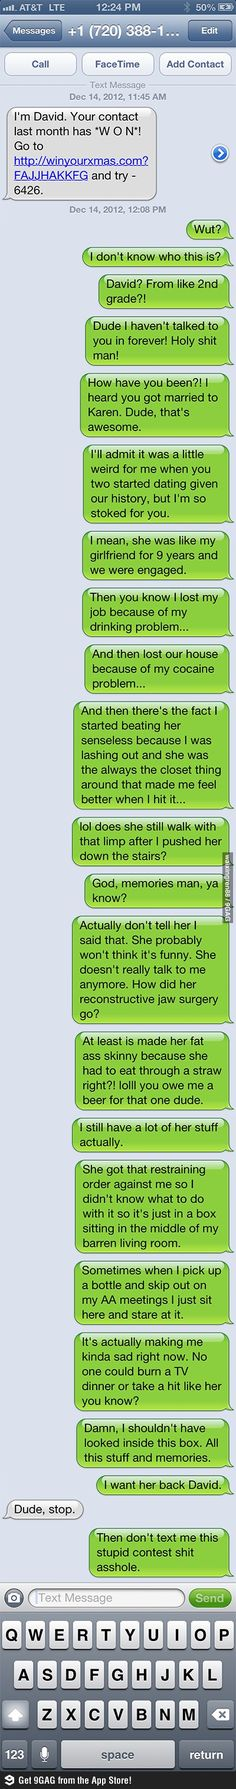 Humor texts laughing so hard hilarious god ideas Funny Shit, Haha Funny, Funny Texts, Humor Texts, Funny Stuff, Freaking Hilarious, Seriously Funny, Freaking Awesome, Super Funny